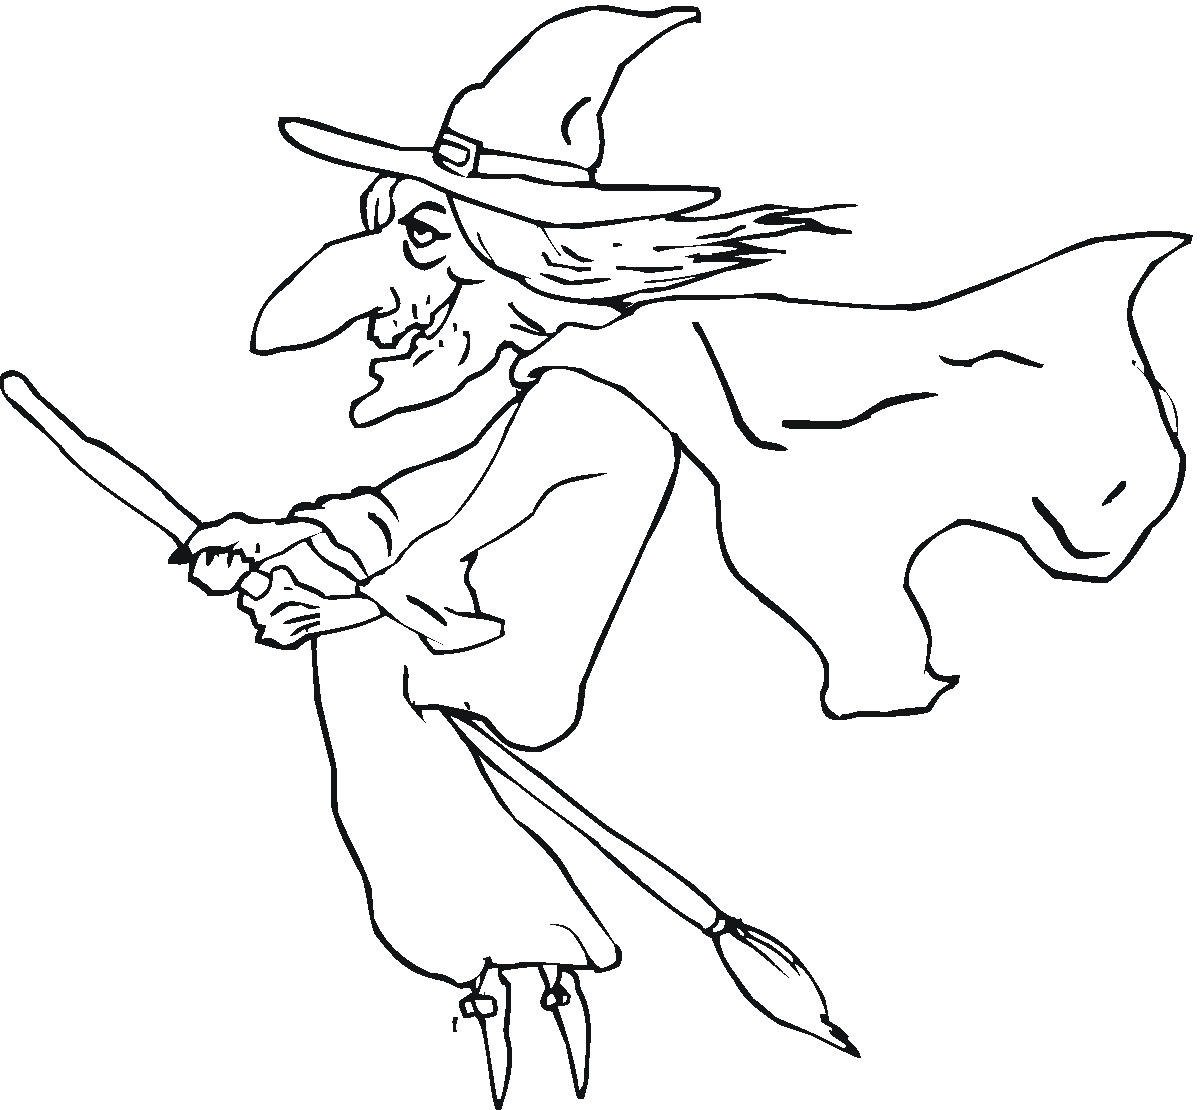 1200x1110 Witches Cauldron Coloring Pages For Kids Impressive Witch Adults